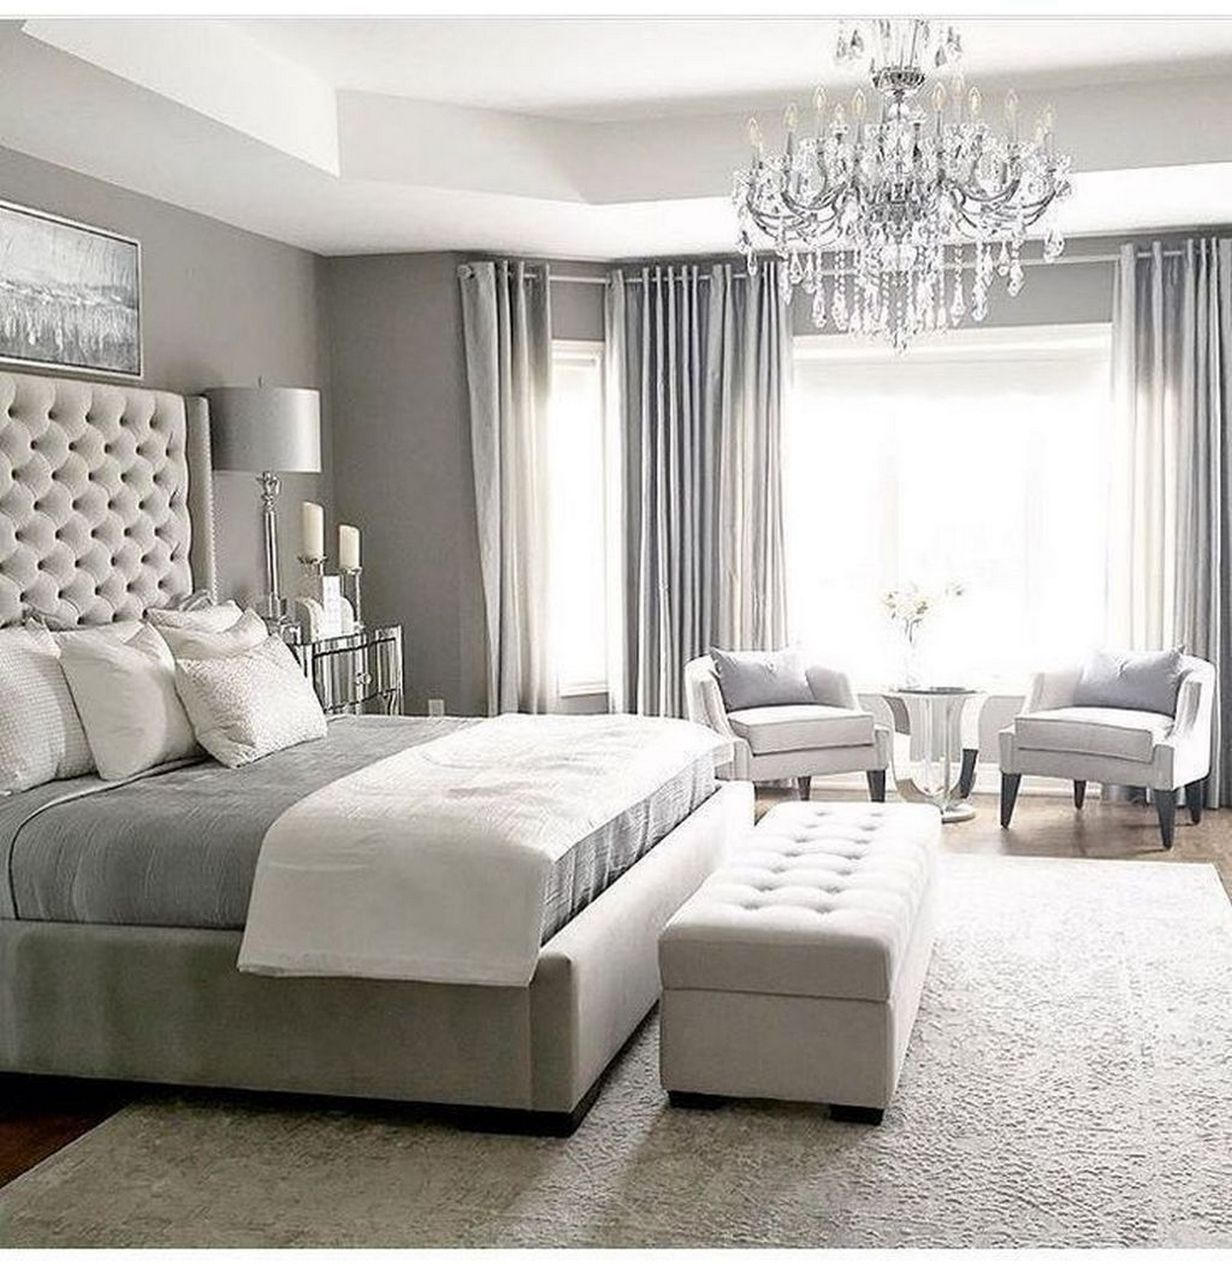 53 comfortable master bedroom decorating ideas for on dreamy luxurious master bedroom designs and decor ideas id=48291